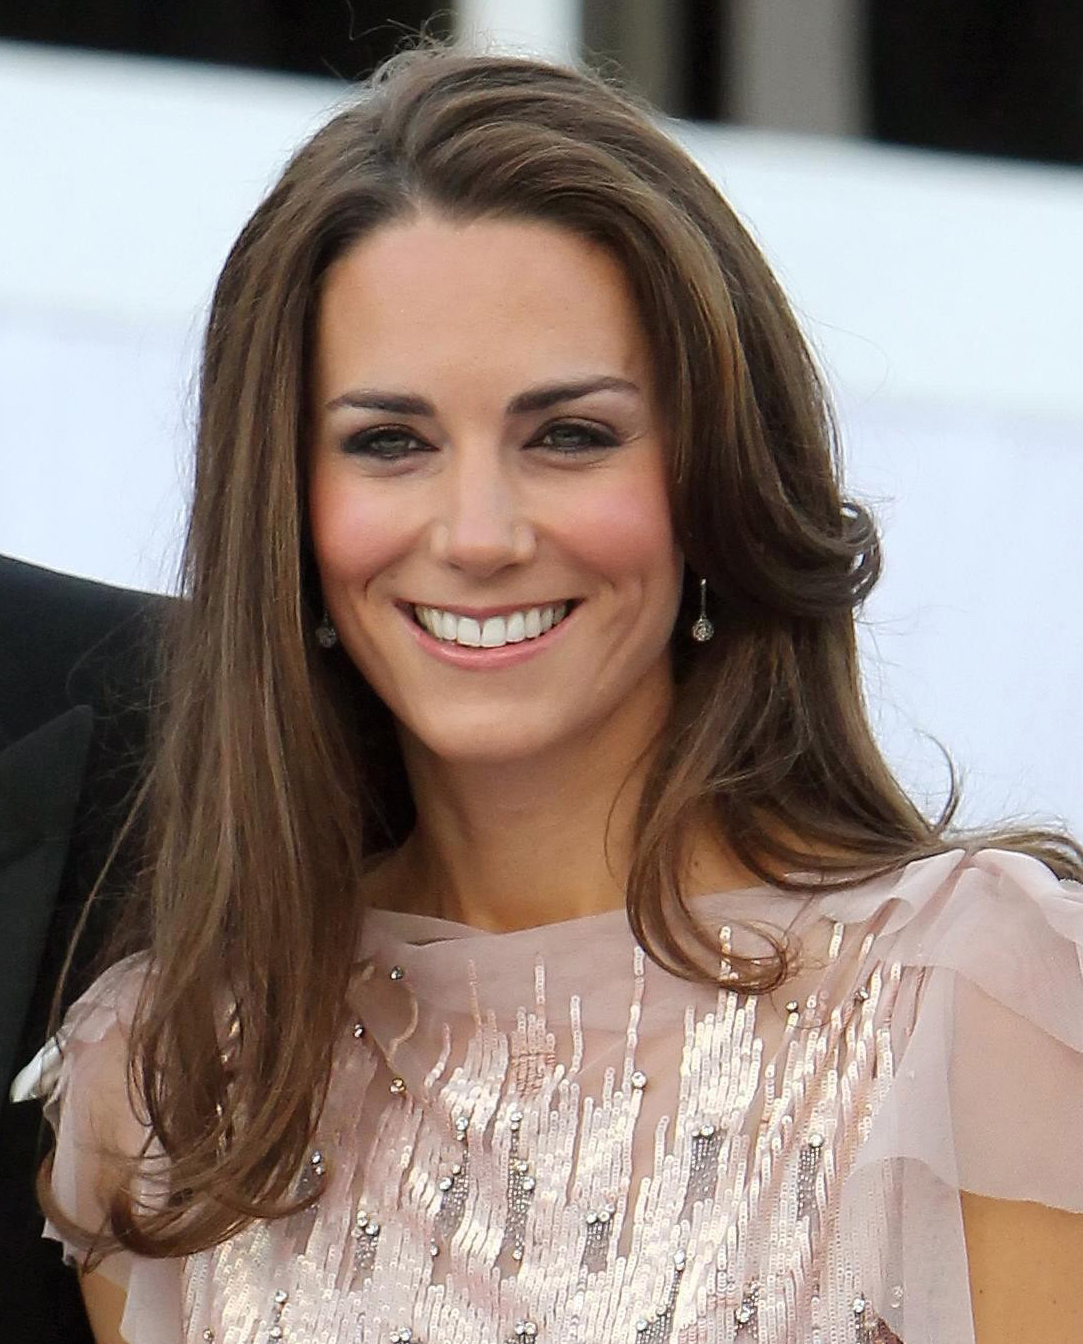 Kate Middleton Pleasant Smile